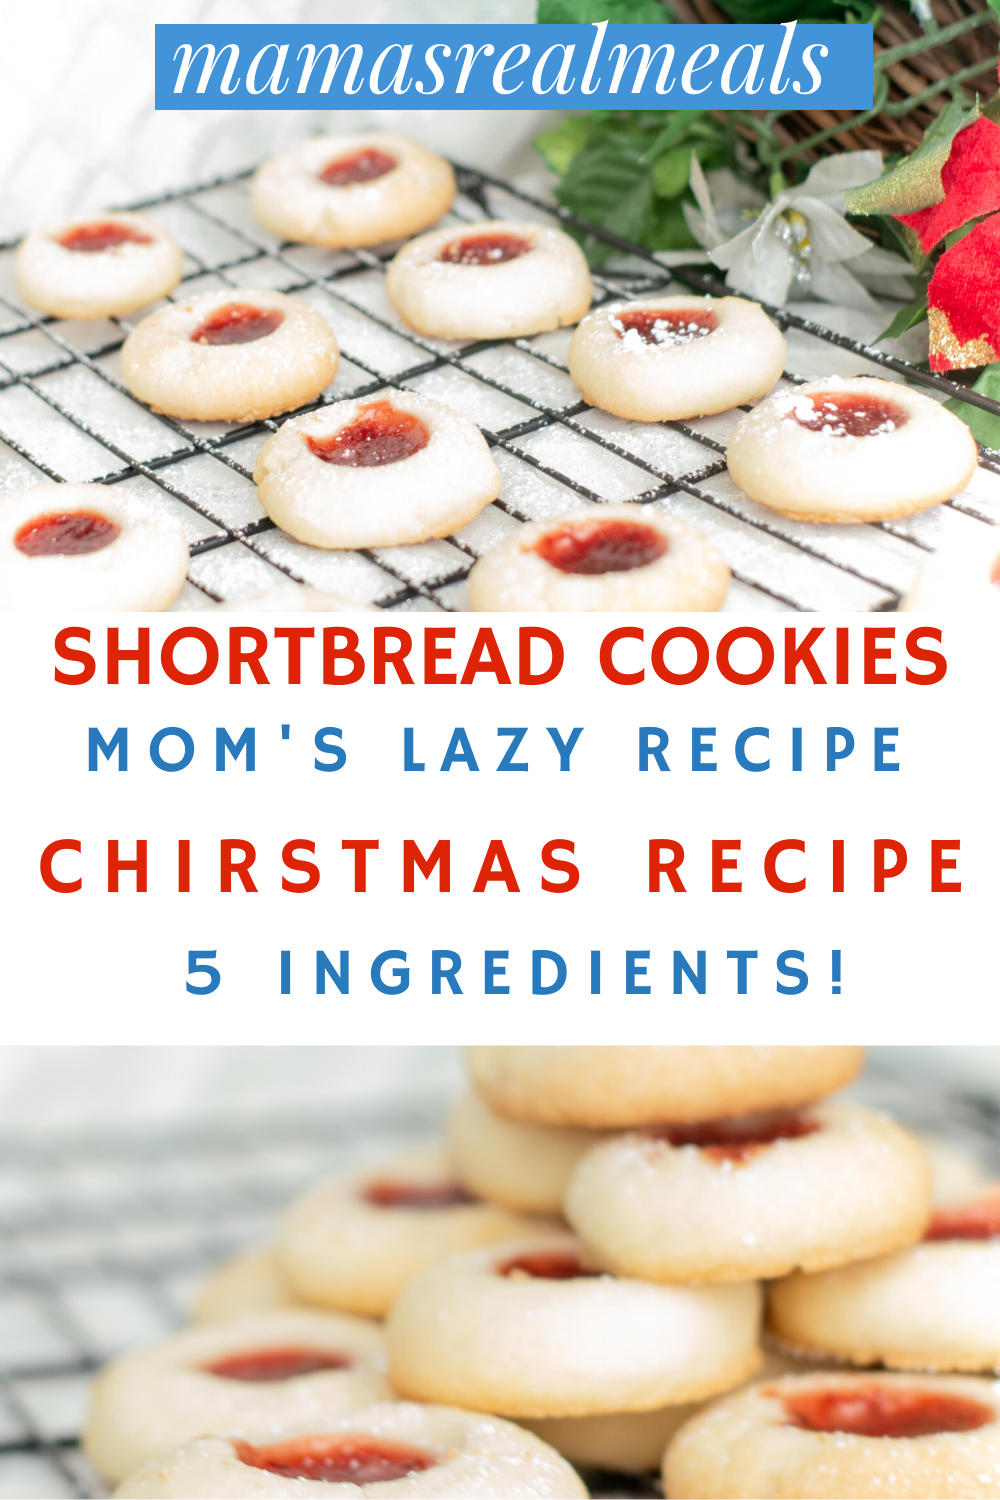 Easy Raspberry Shortbread Thumbprint Cookies Recipe Cookie Recipes Homemade Recipes Easy Christmas Cookie Recipes